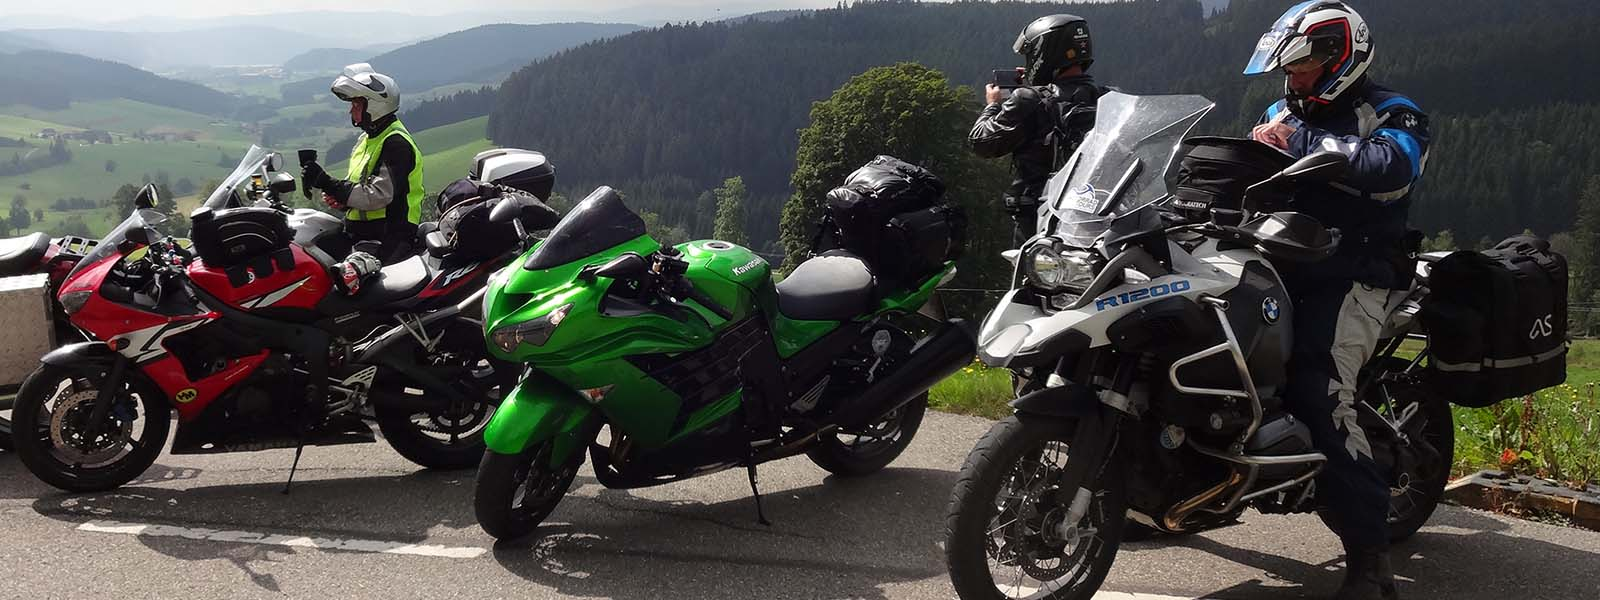 The Black Forest, The Mosel & Rhine valley's, Hunsruck National Park & Vosges Motorcycle Tour